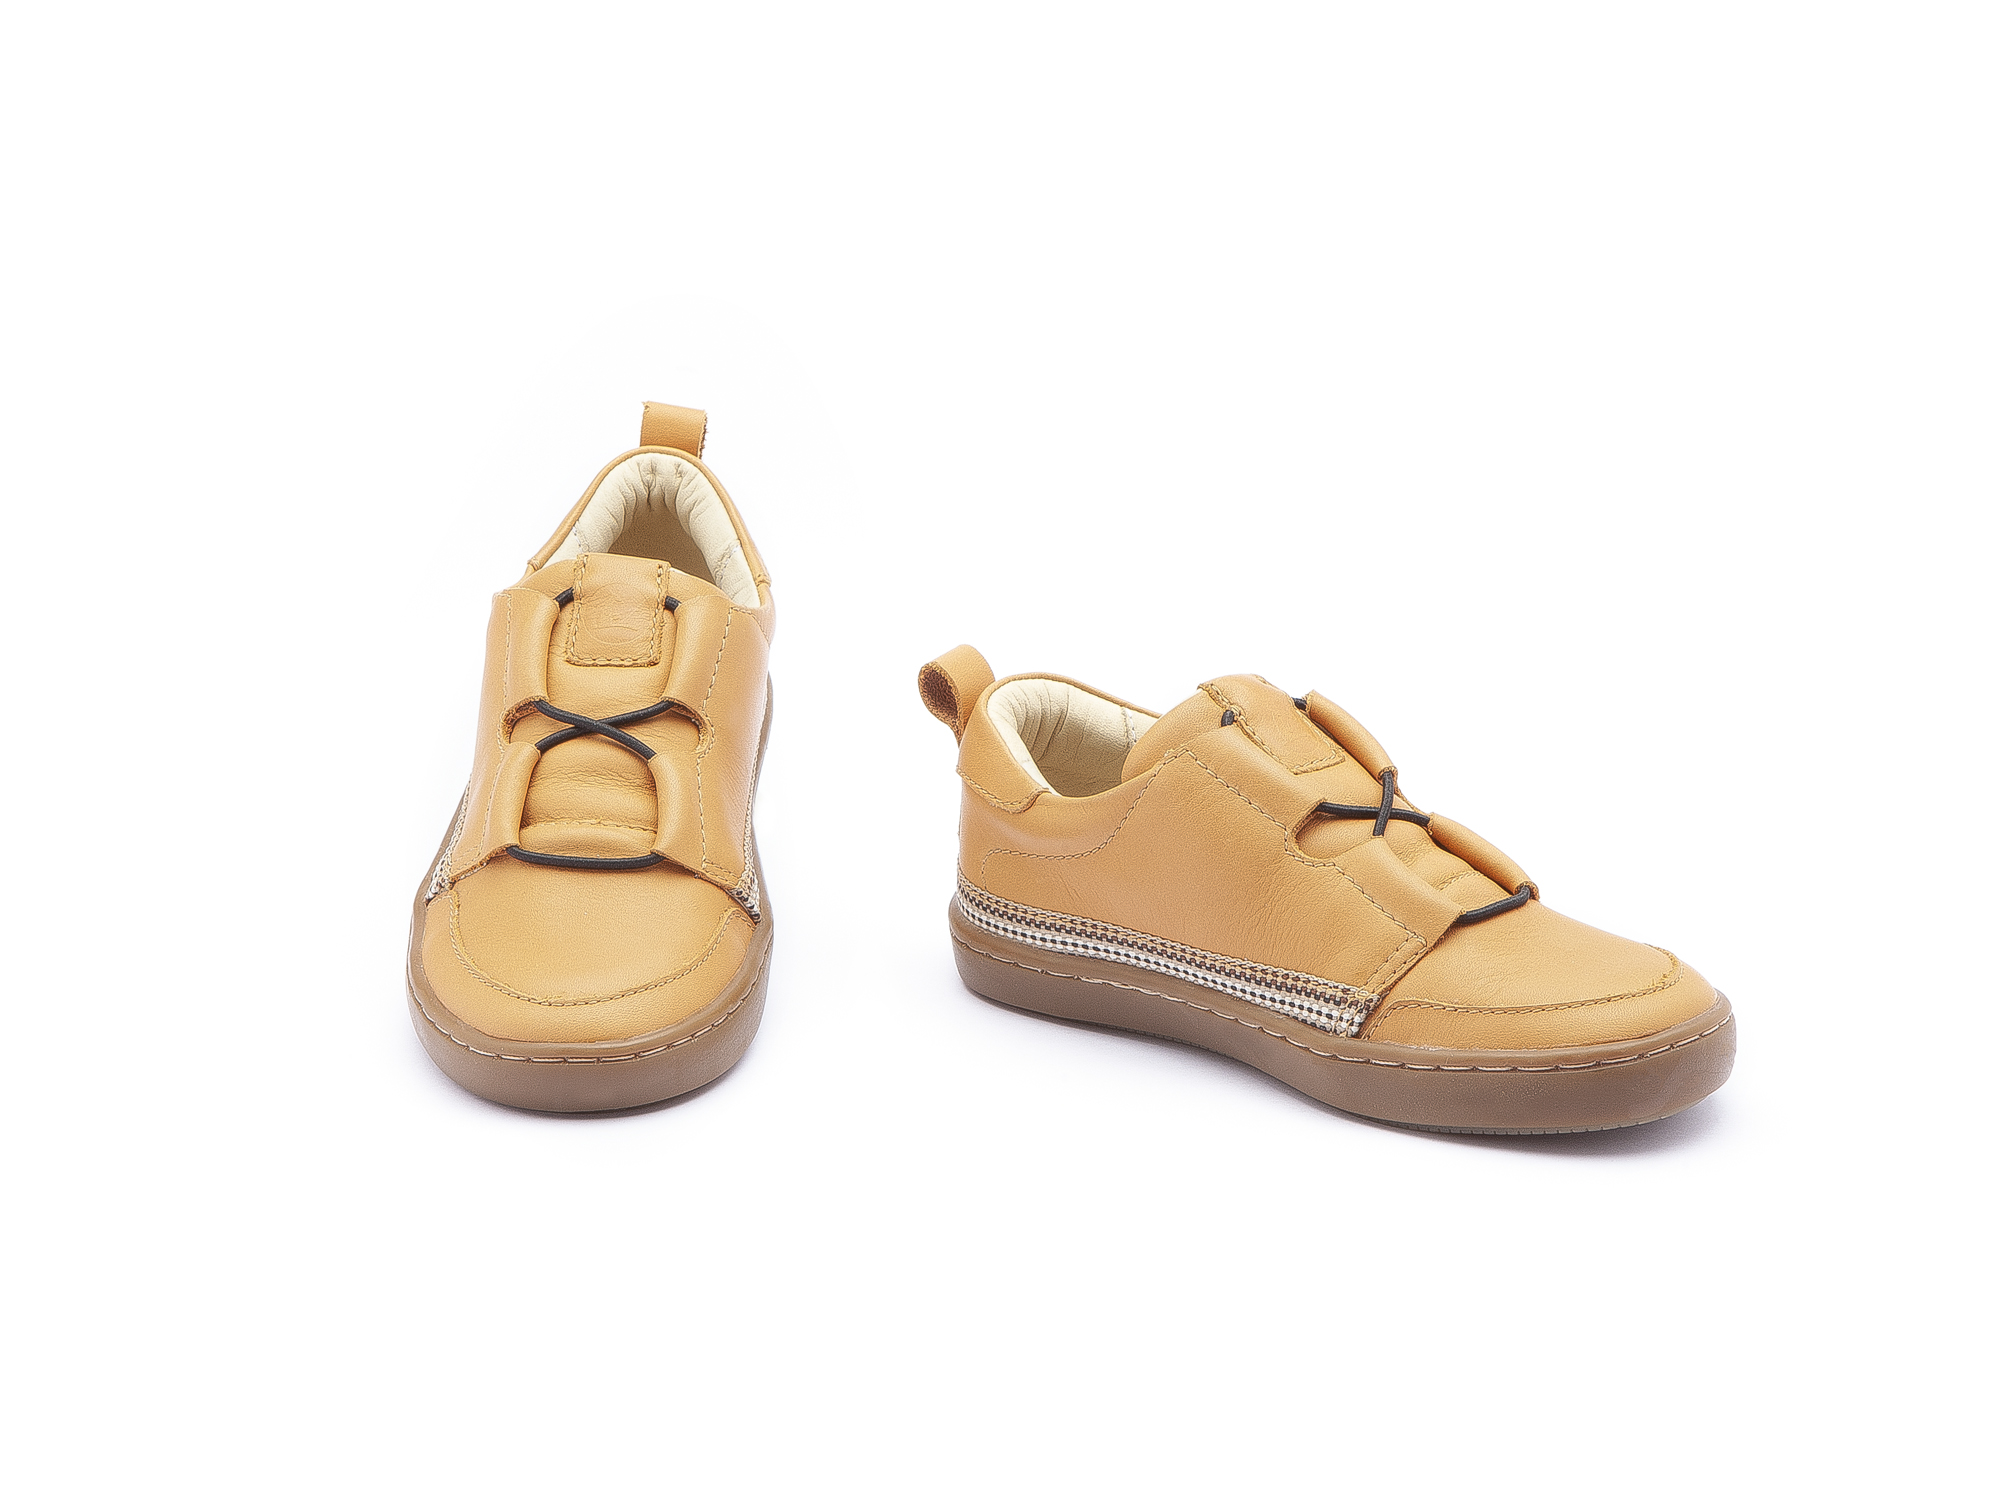 Sneaker Casual Little Ancestral Hay Toddler 2 à 4 anos - 1